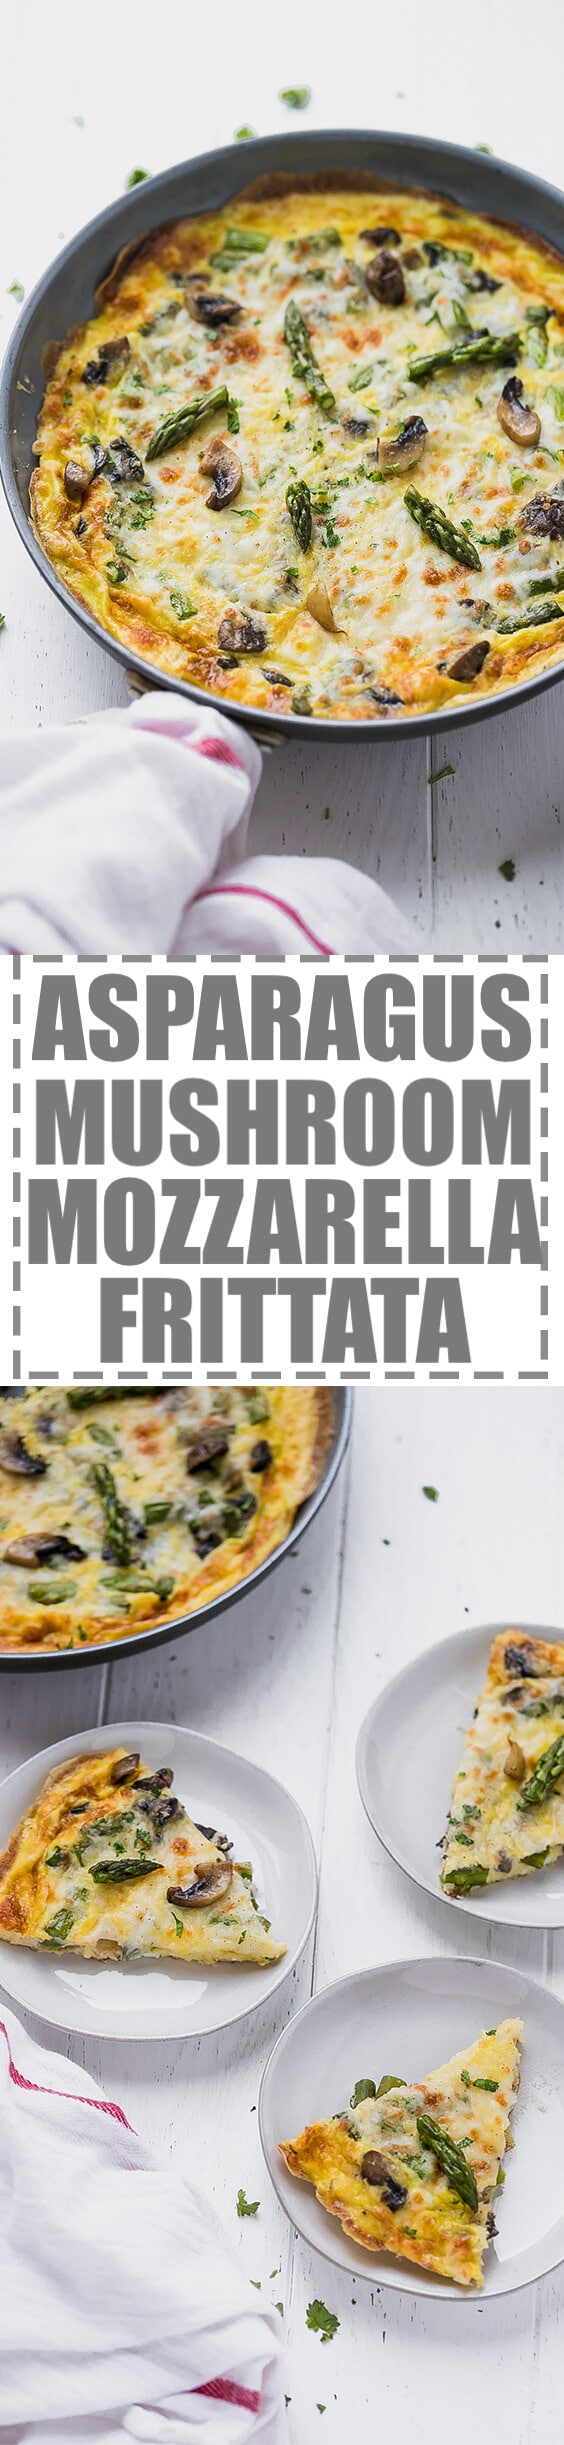 Asparagus,Mushroom and Mozzarella Frittata - the perfect nutritious, low-carb, keto breakfast for spring. Packed with veggies, this frittata is a family favorite.